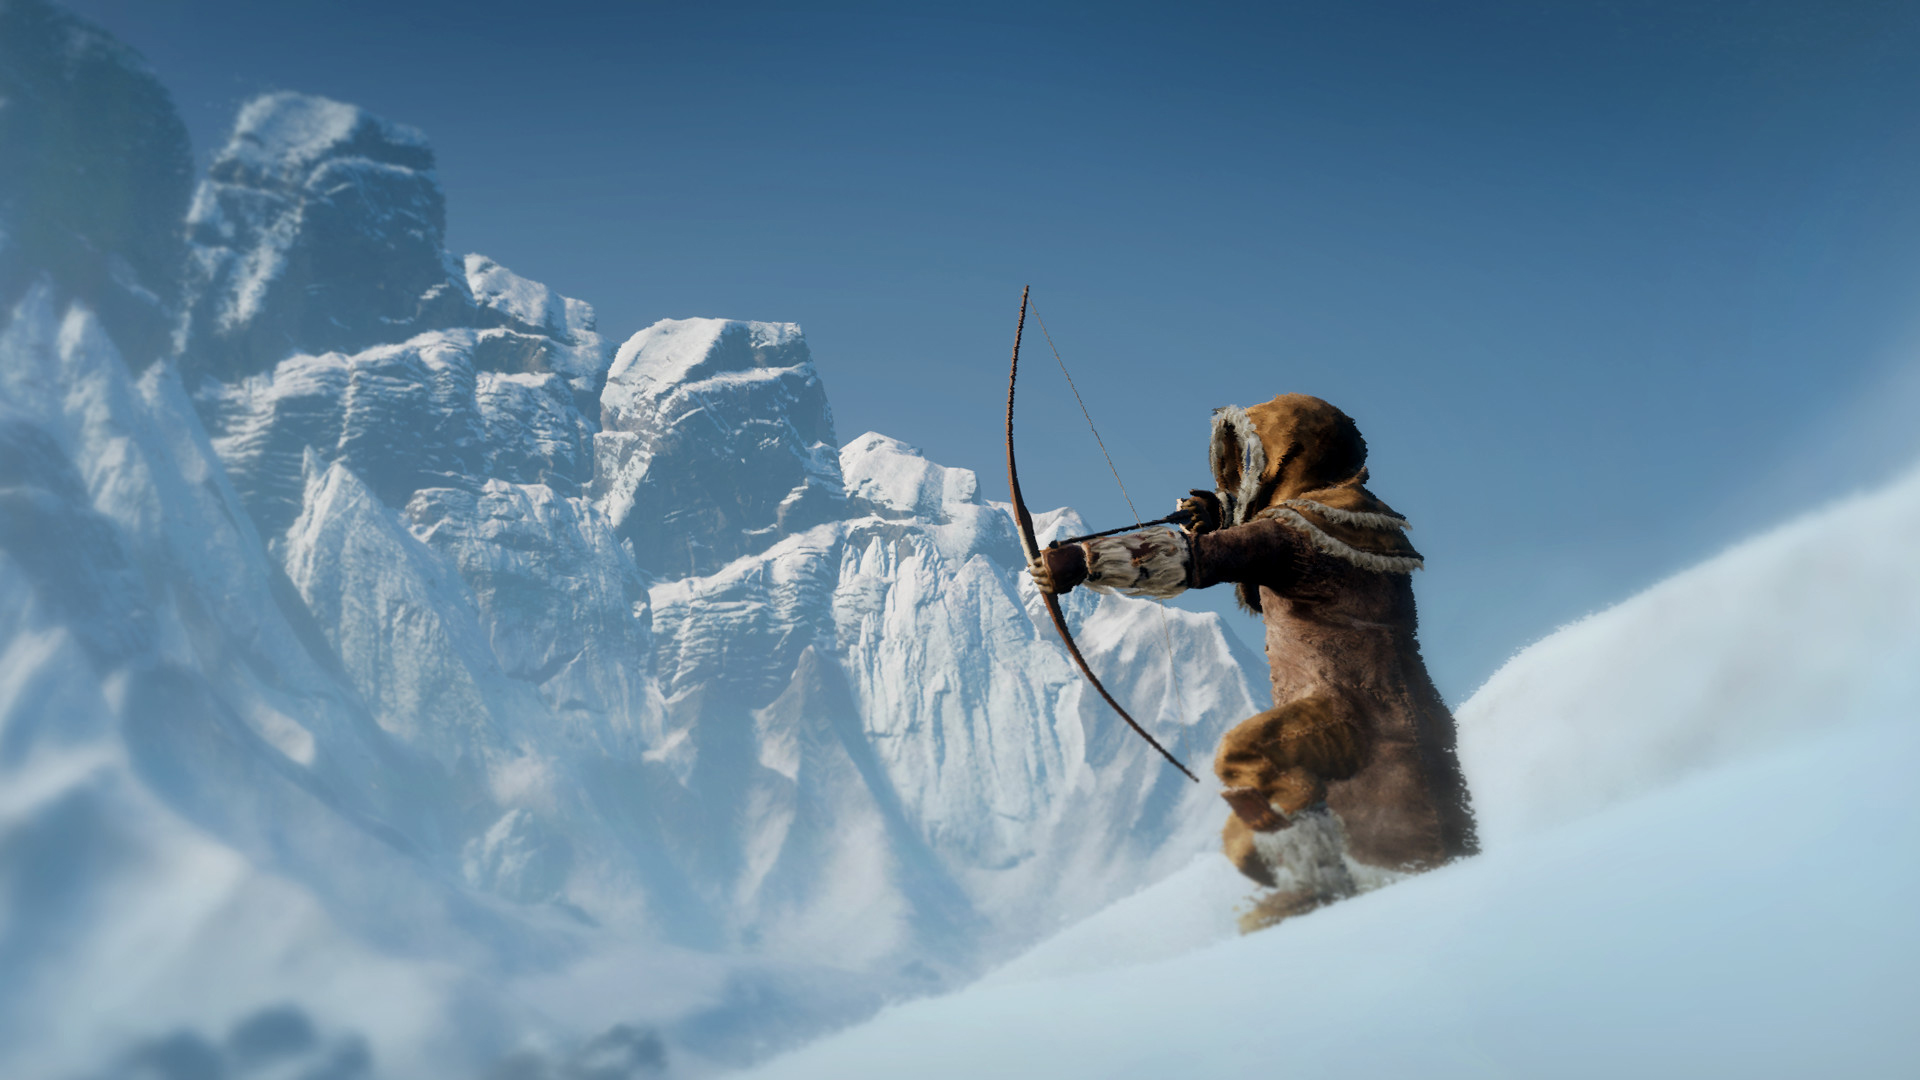 artic hunting icarus beta weekend 3 featured image